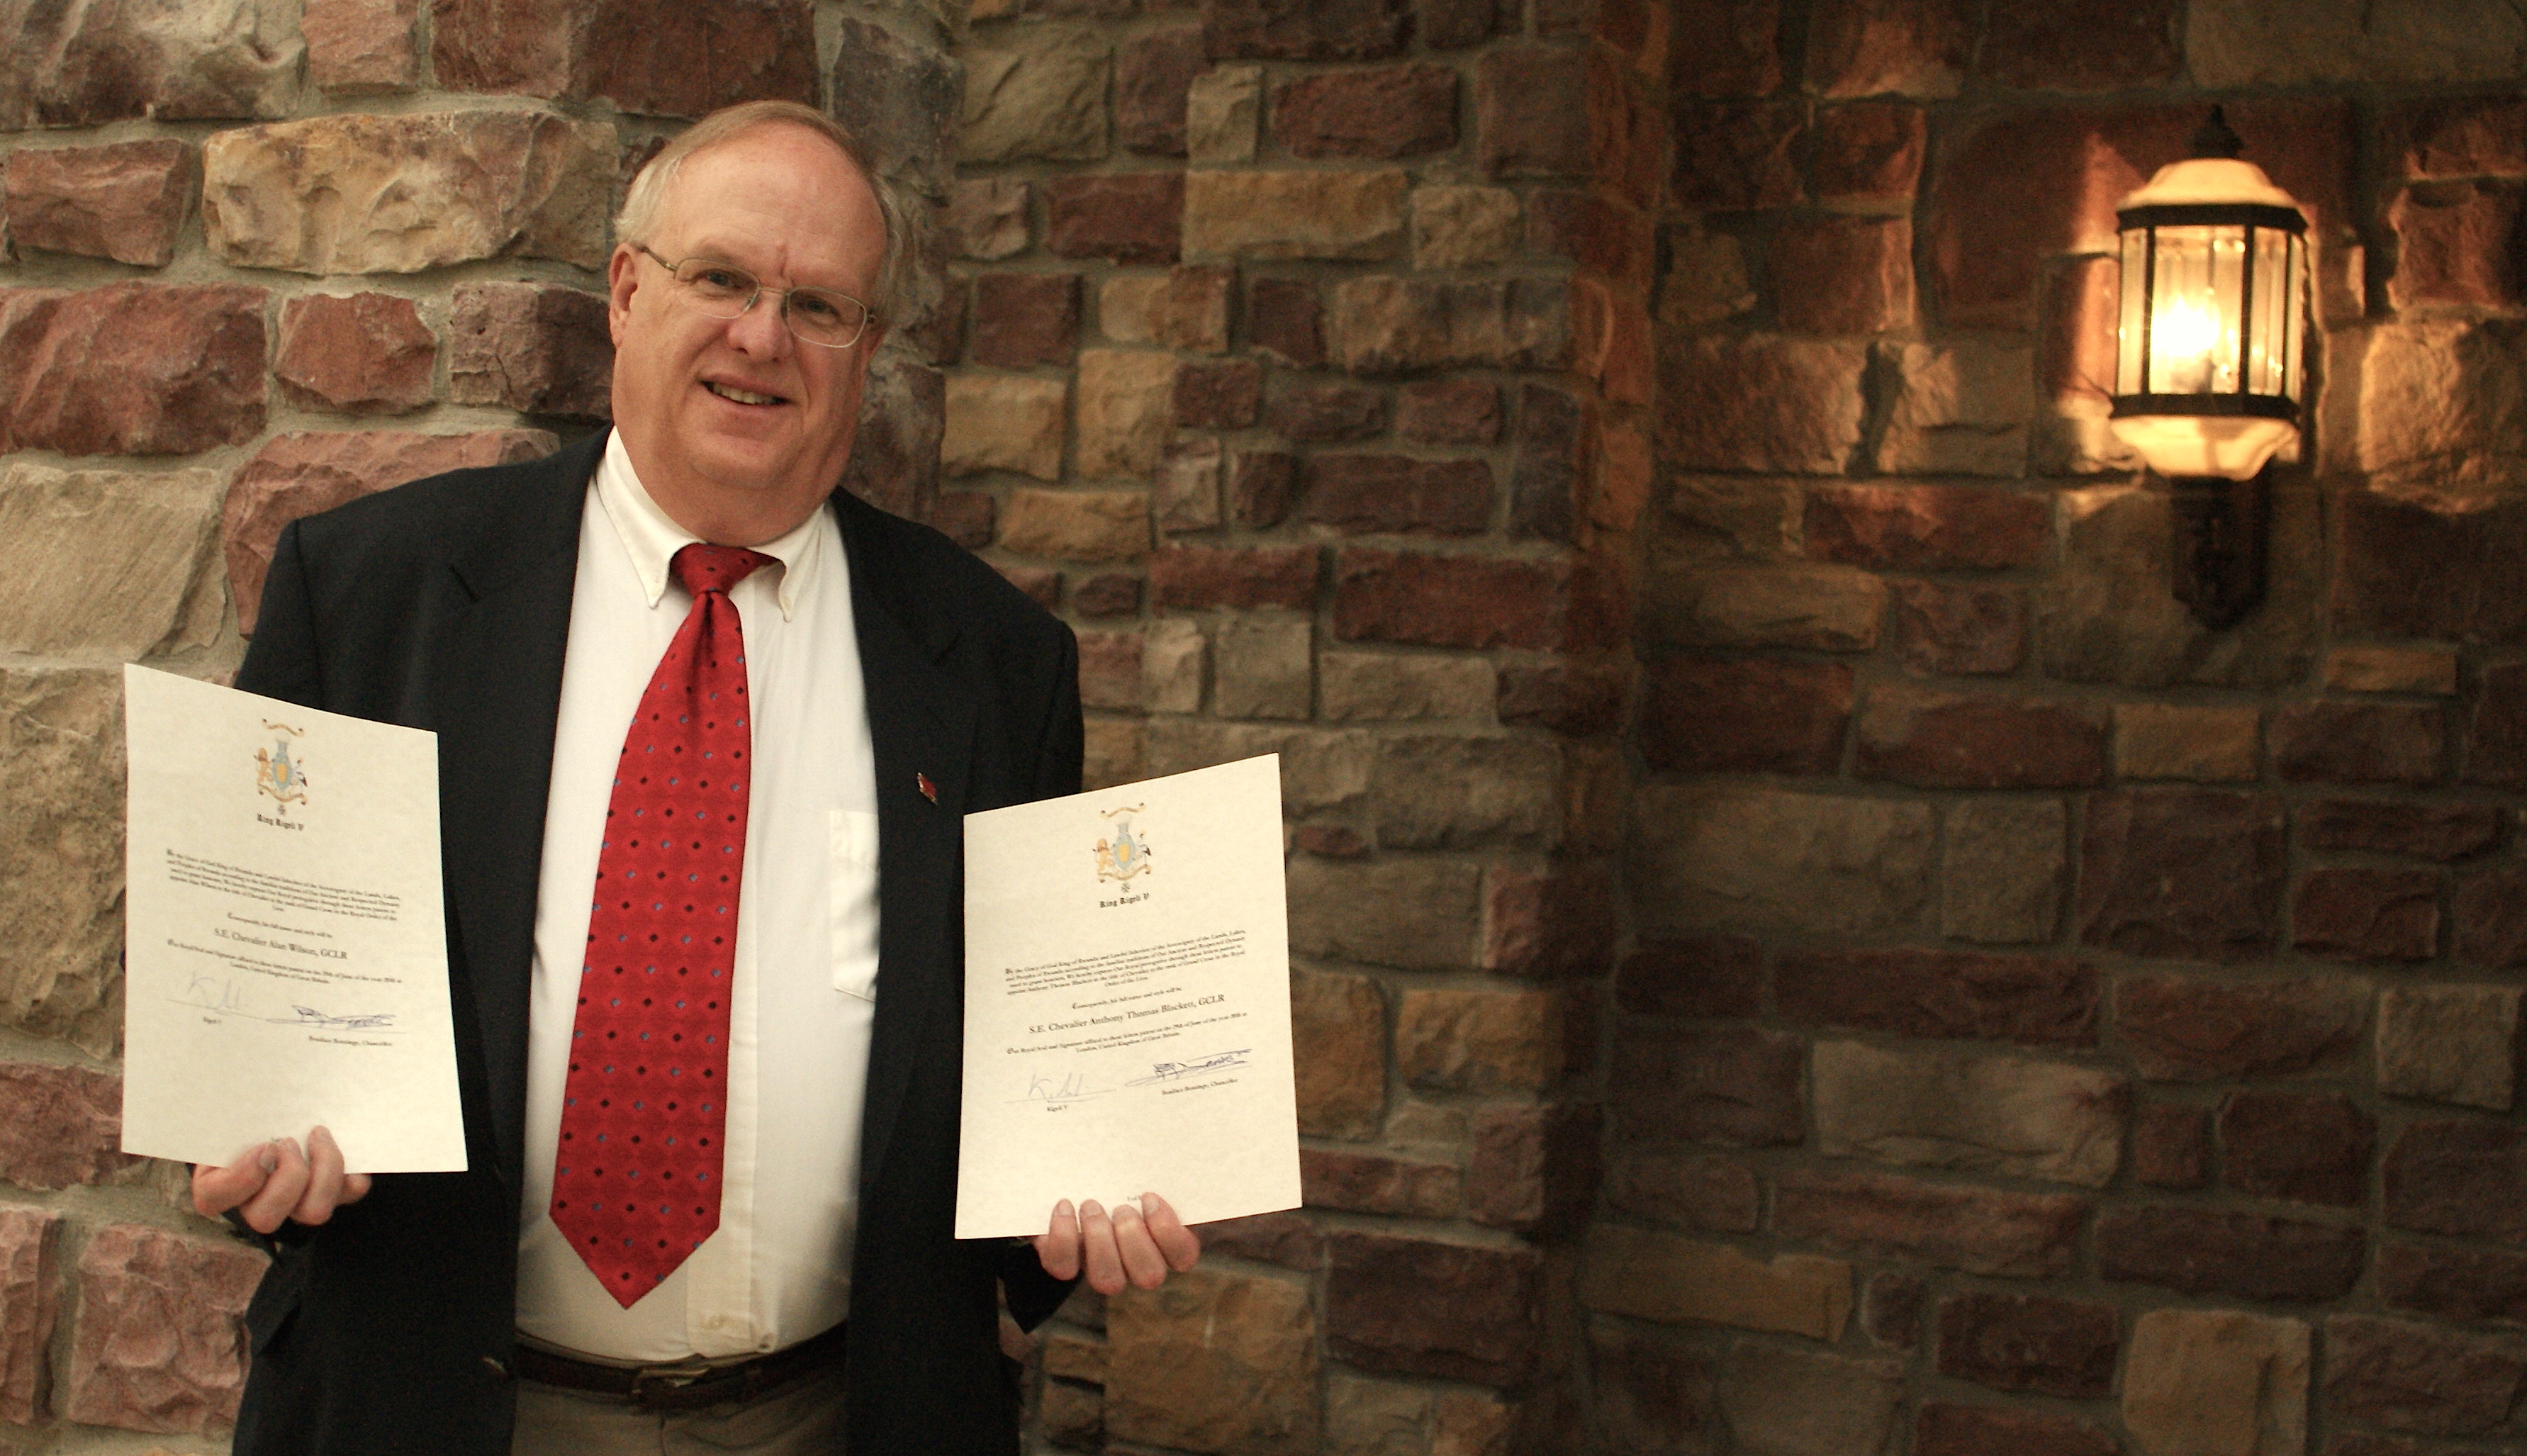 George Horwatt, President of The Welsh Cultural Endeavor of Northeastern Pennsylvania, holds proclamations signed by King Kigeli V of Rwanda to knight Welsh Researchers Alan Wilson and Baram Blackett.